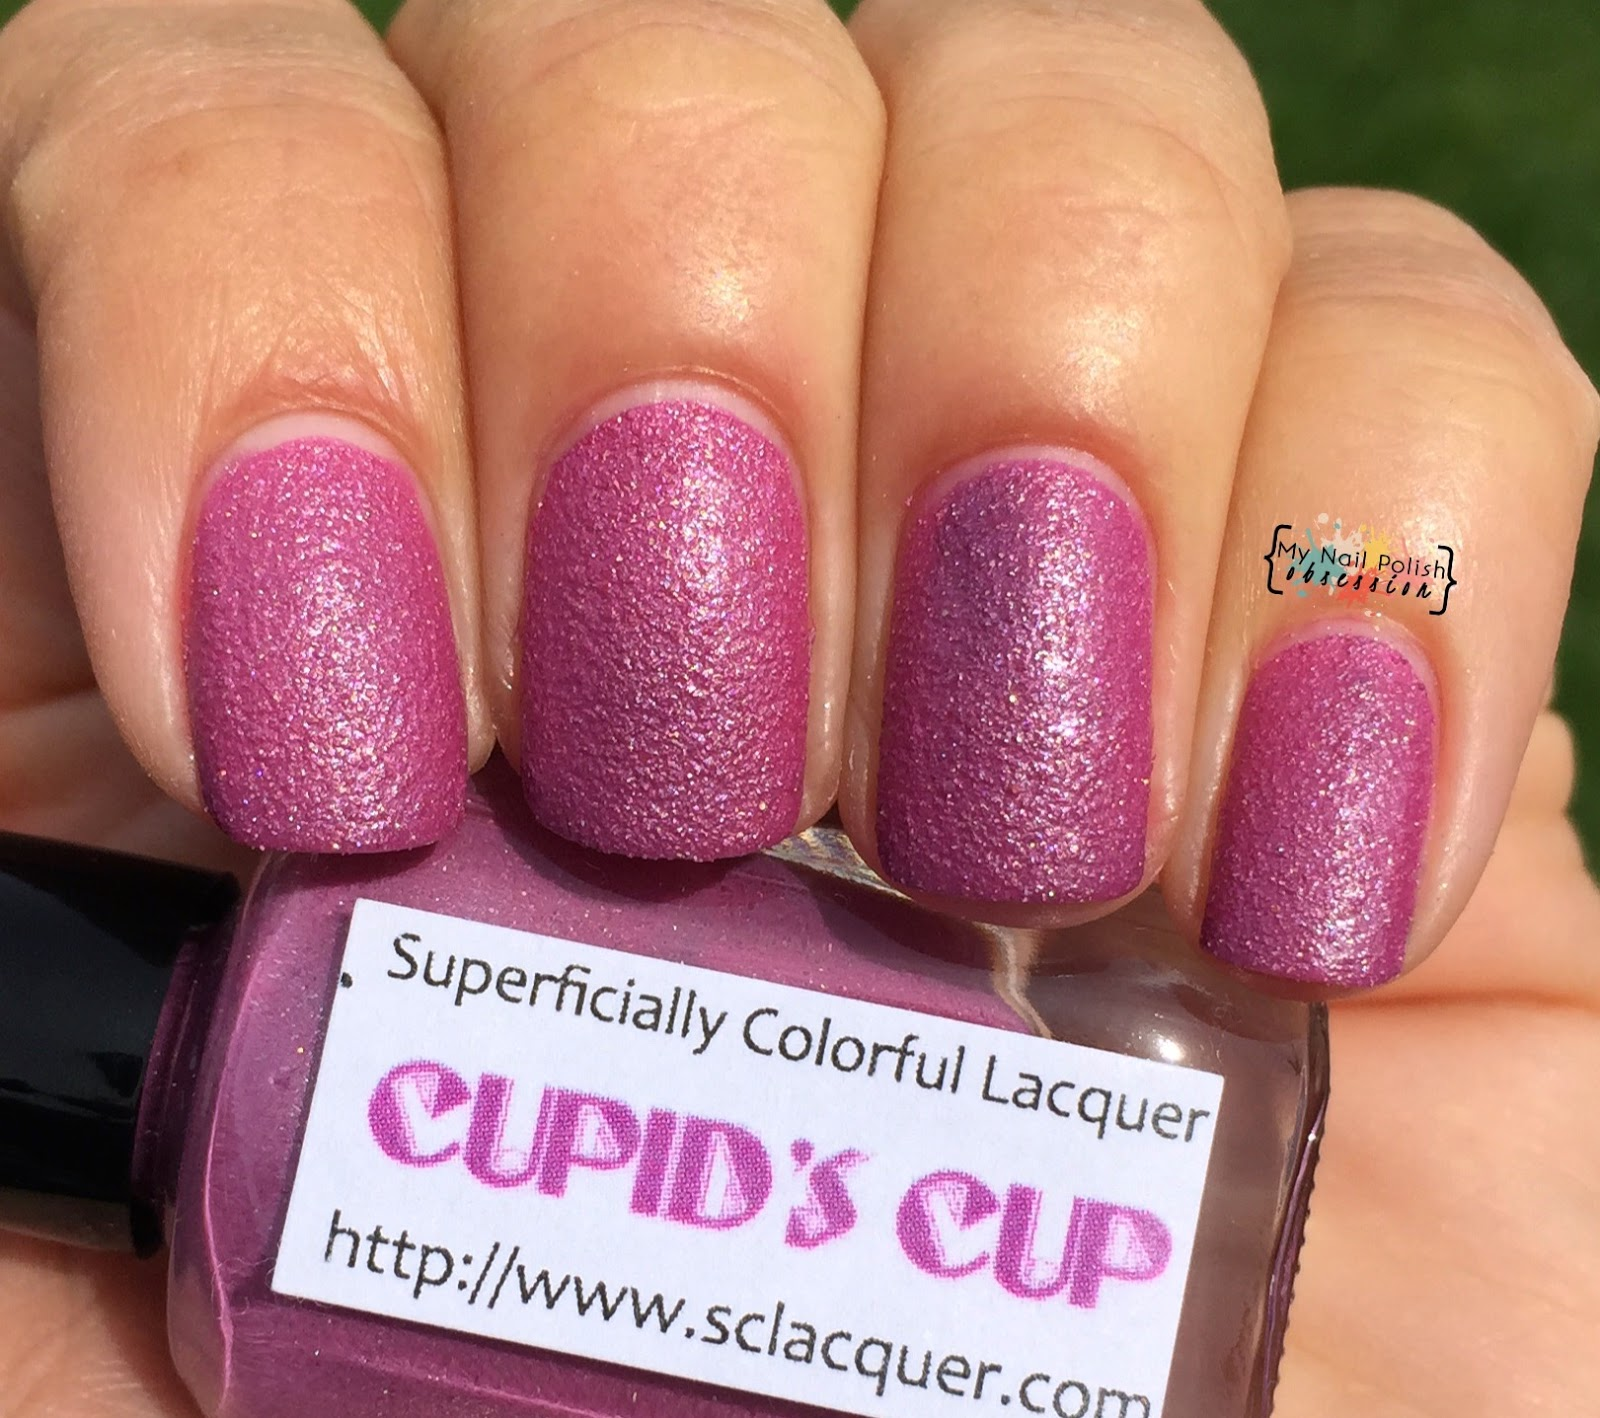 Superficially Colorful Lacquer Cupid's Cup